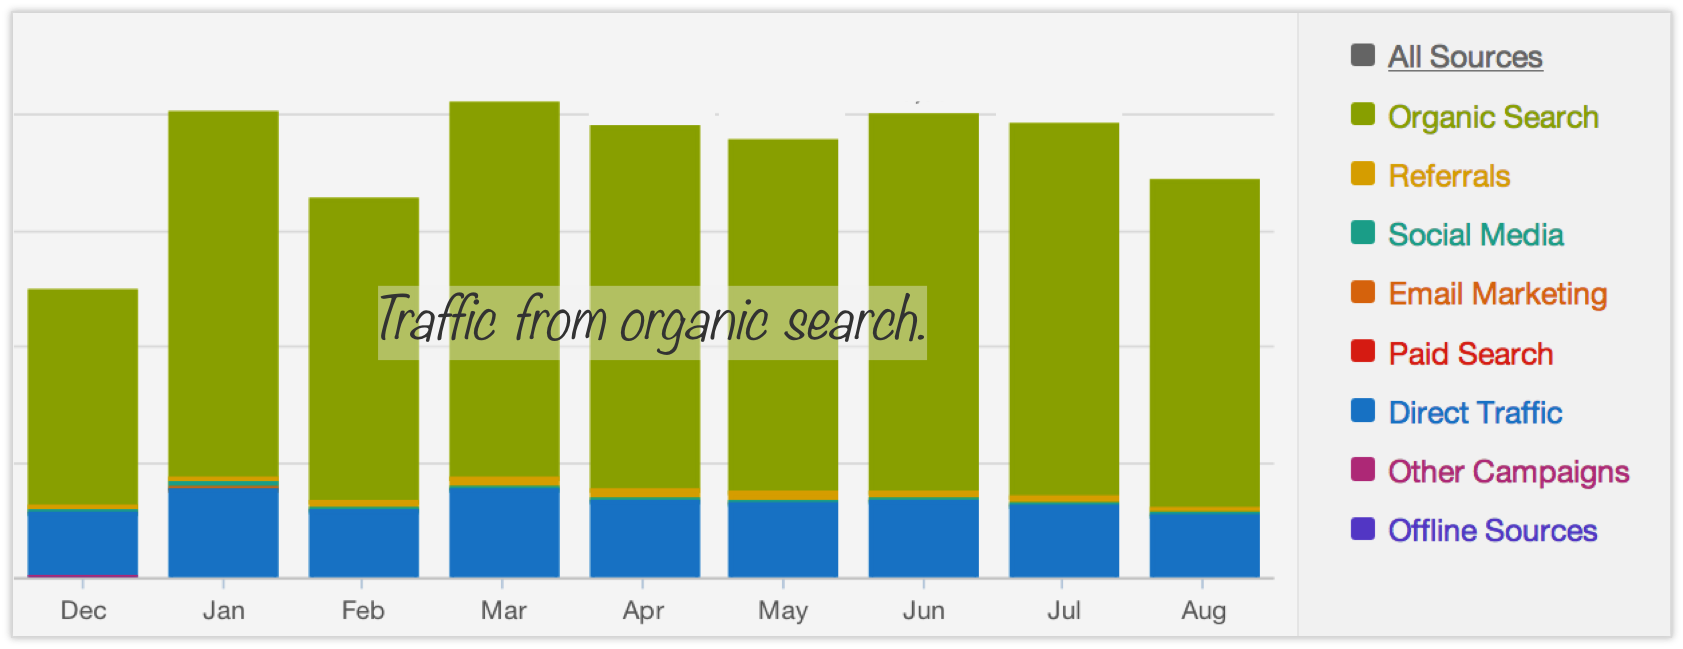 traffic-from-organic-search-to-content-anum-hussain-presentations